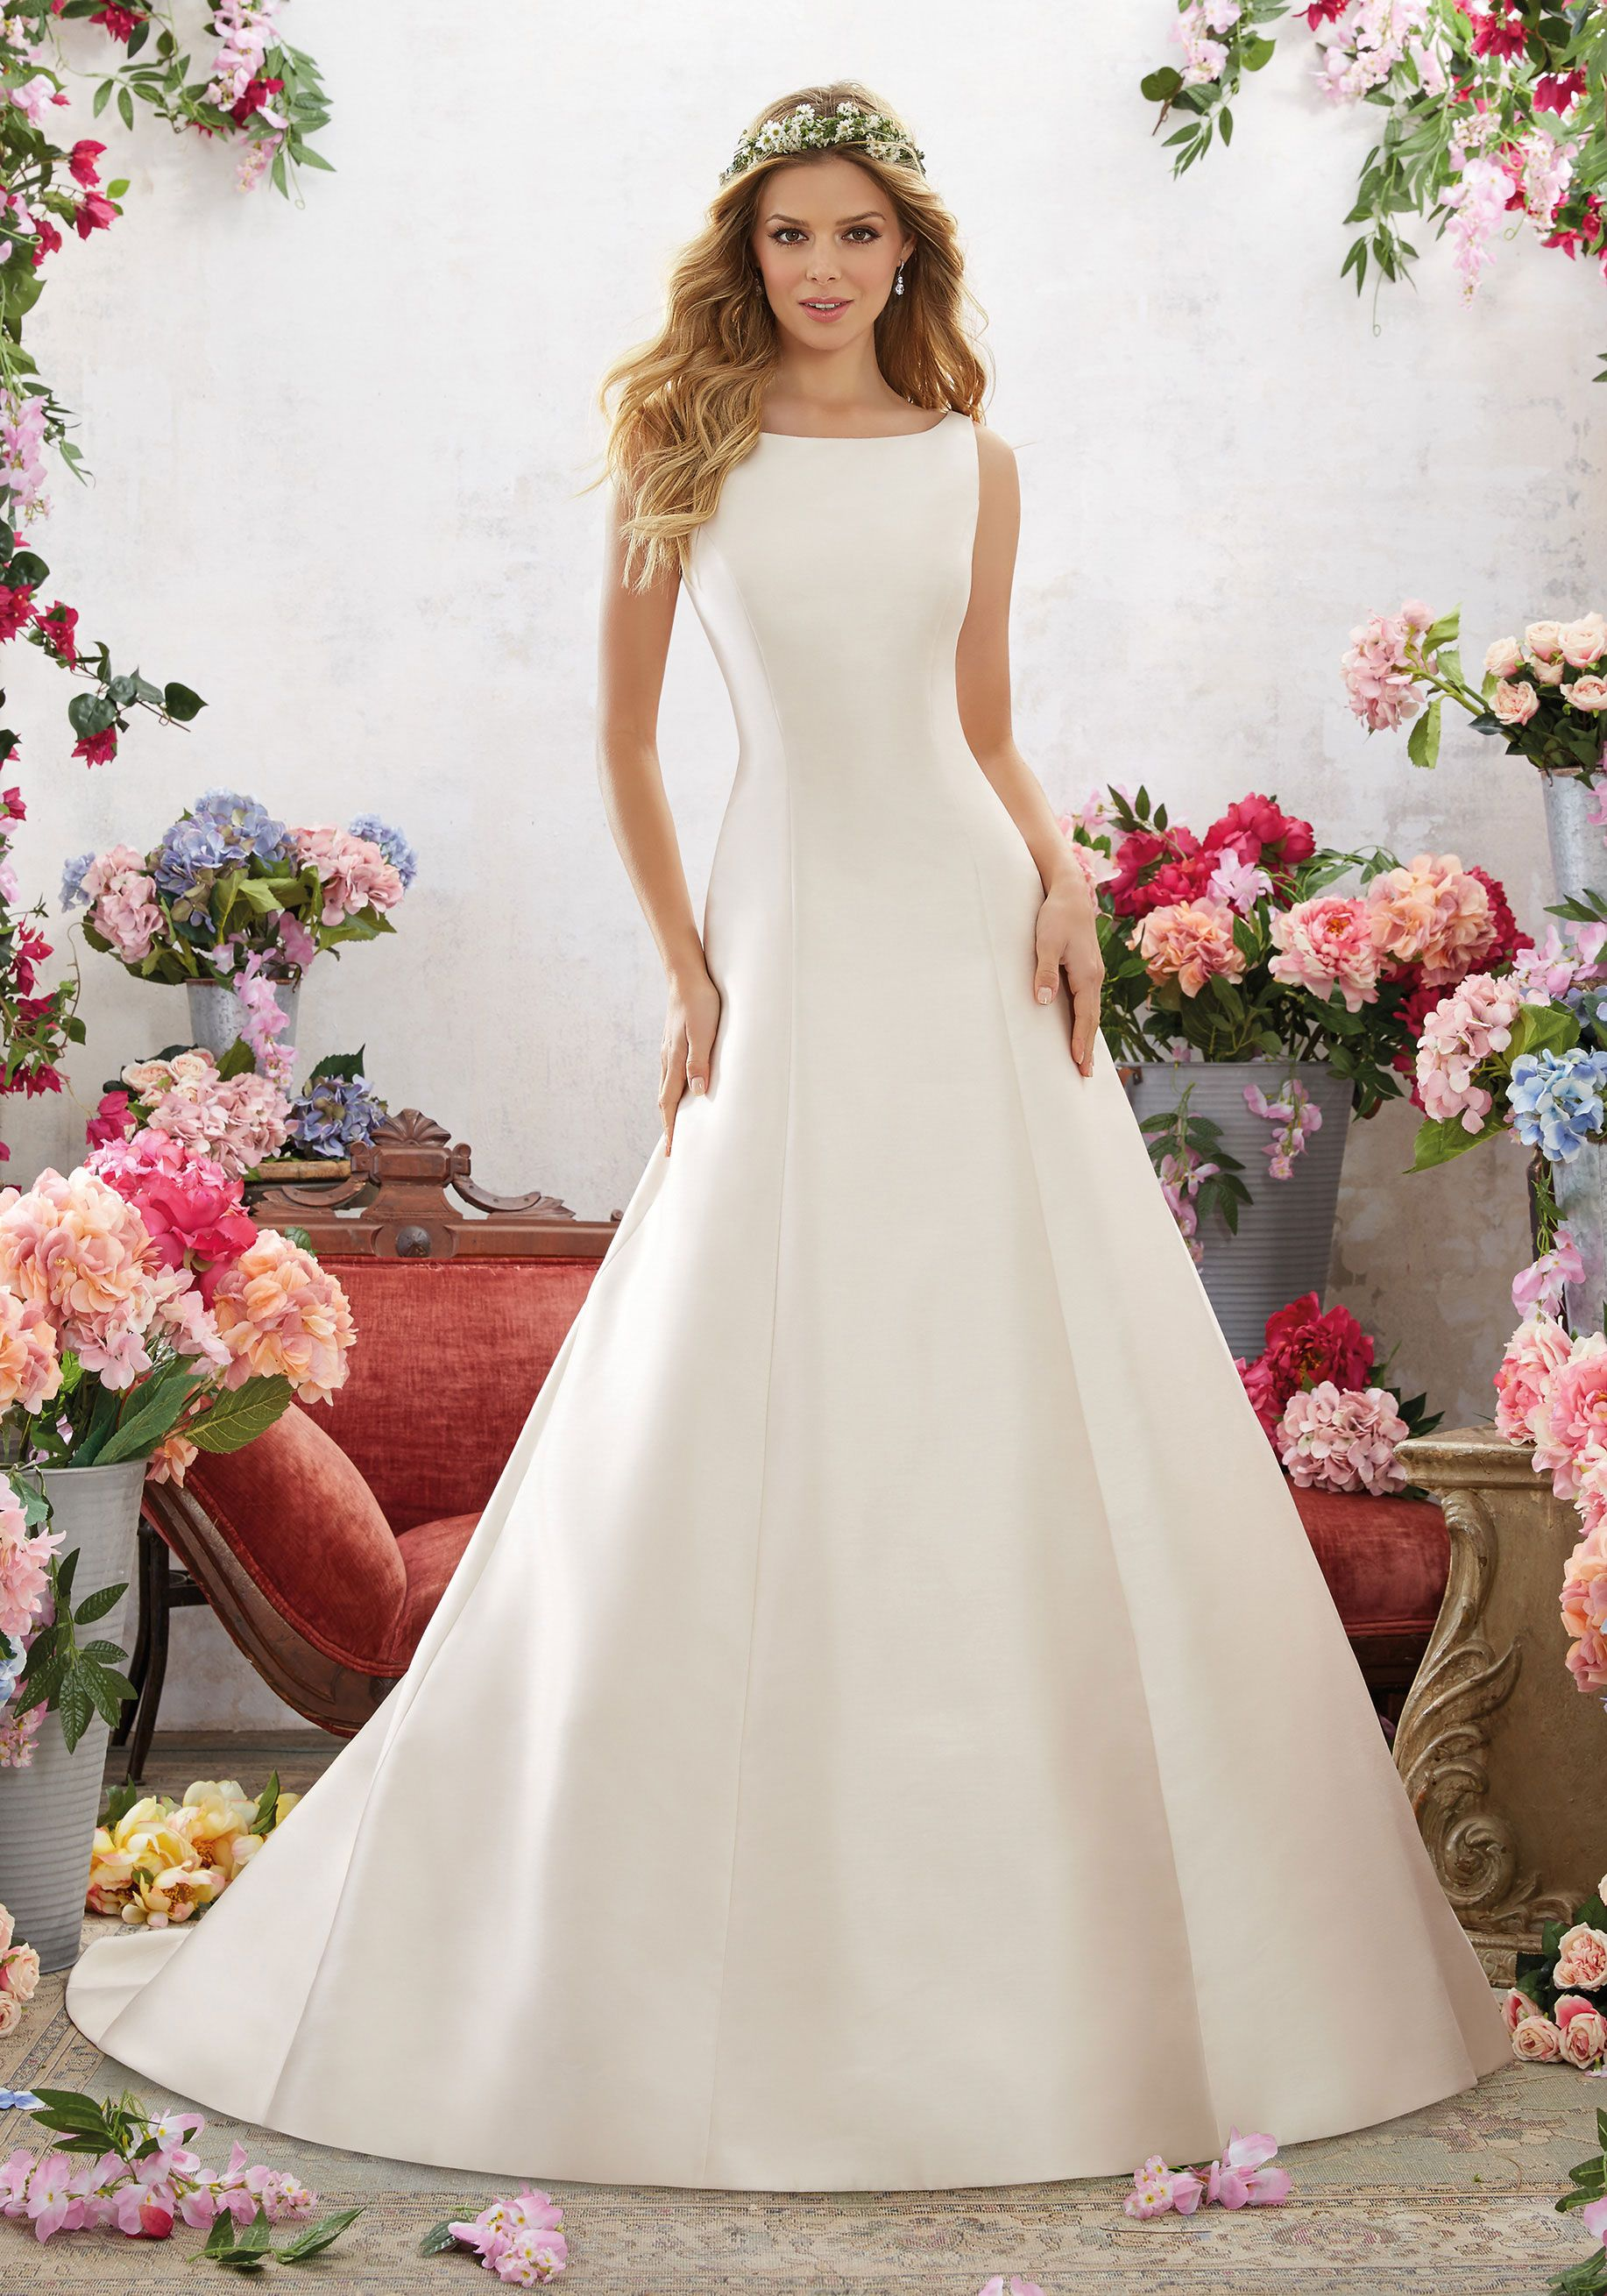 6858 designer wedding dresses and bridal gowns by morilee this 6858 designer wedding dresses and bridal gowns by morilee this elegant a line wedding ombrellifo Images